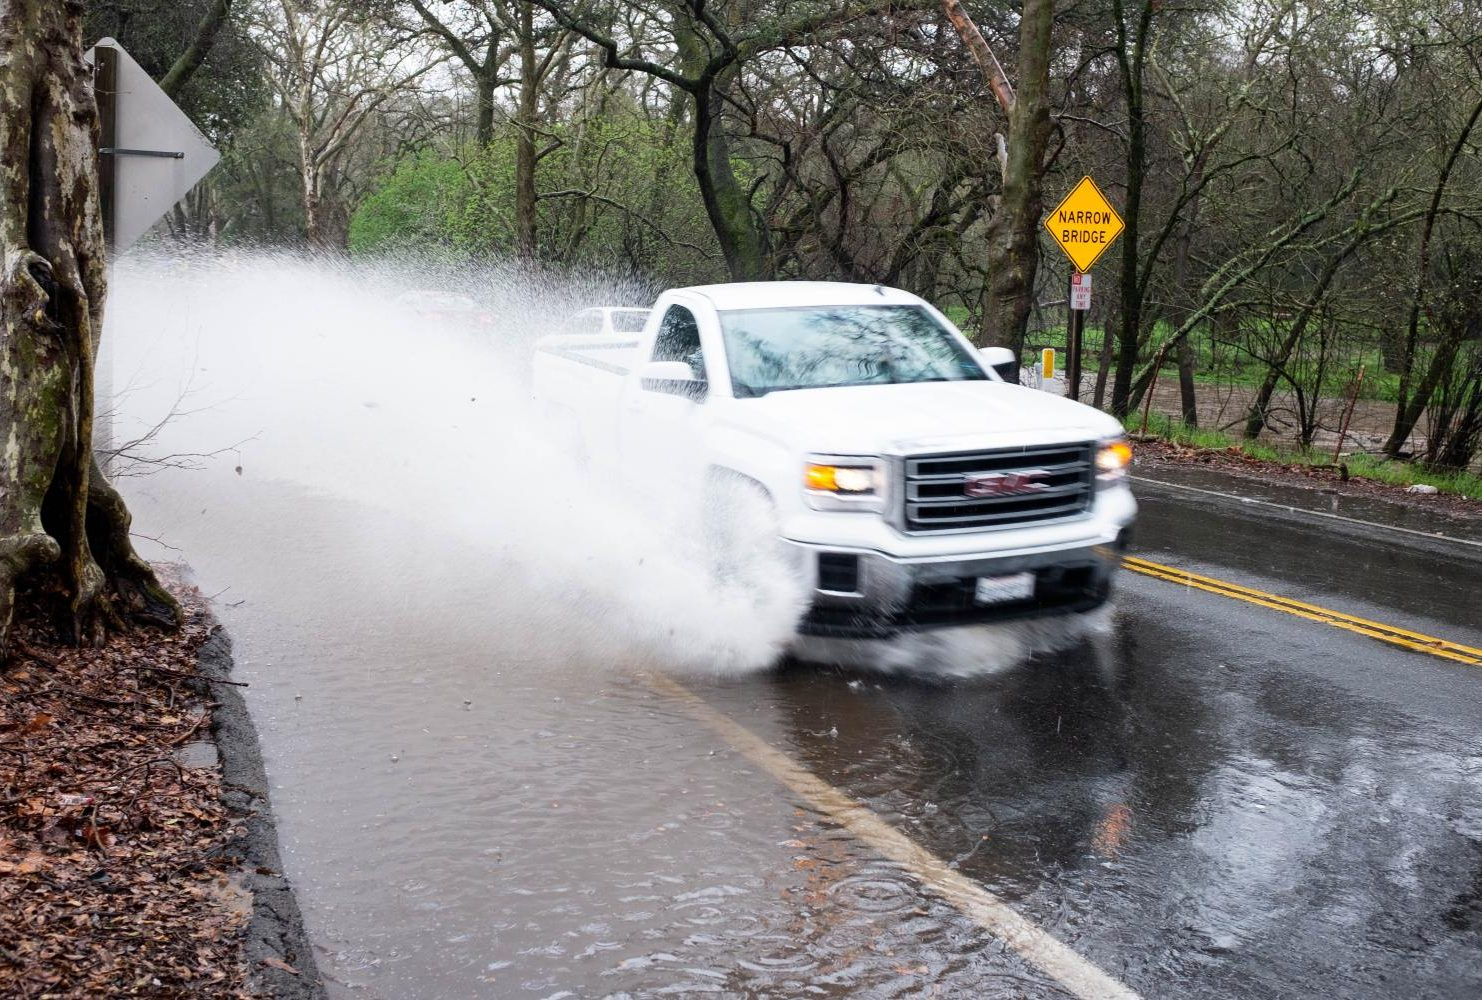 A section of road flooded leaving a puddle that extended into a lane of traffic on a section of Winding Way which runs alongside American River College on Feb. 26, 2019. (Photo by Patrick Hyun Wilson)